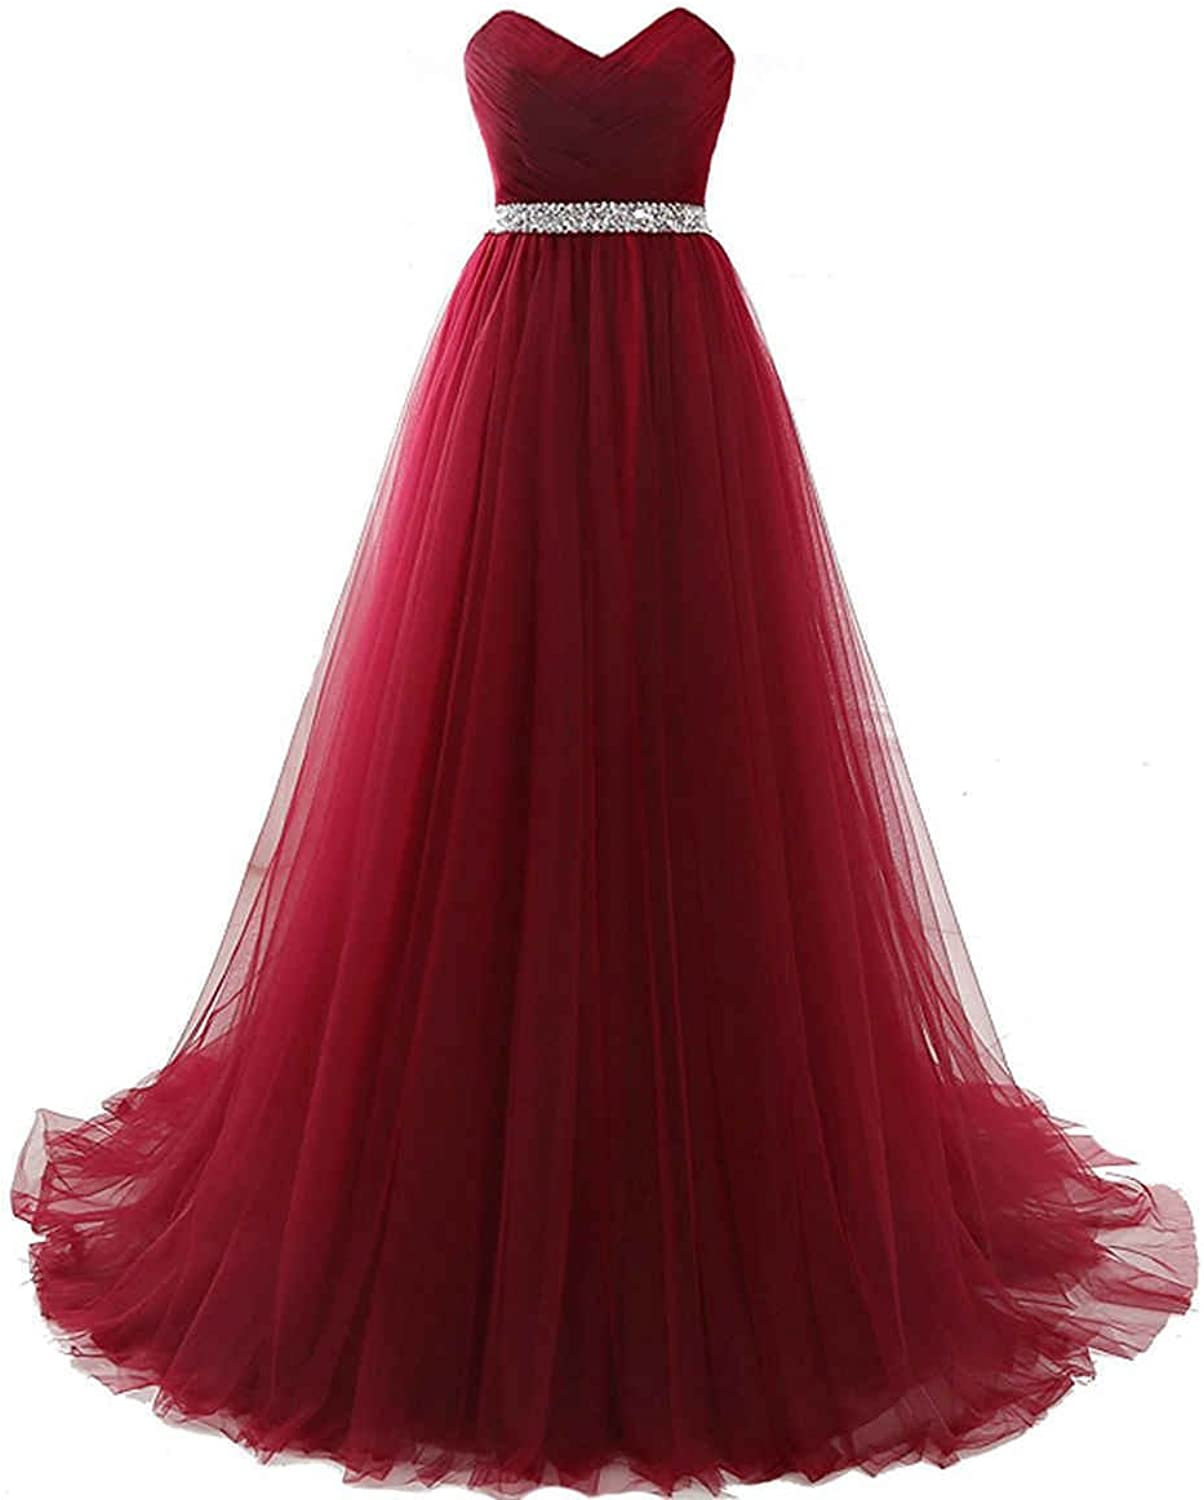 JQLD Womens Sweetheart Prom Dresses Beaded Long Pleated A Line Bridesmaid Gowns